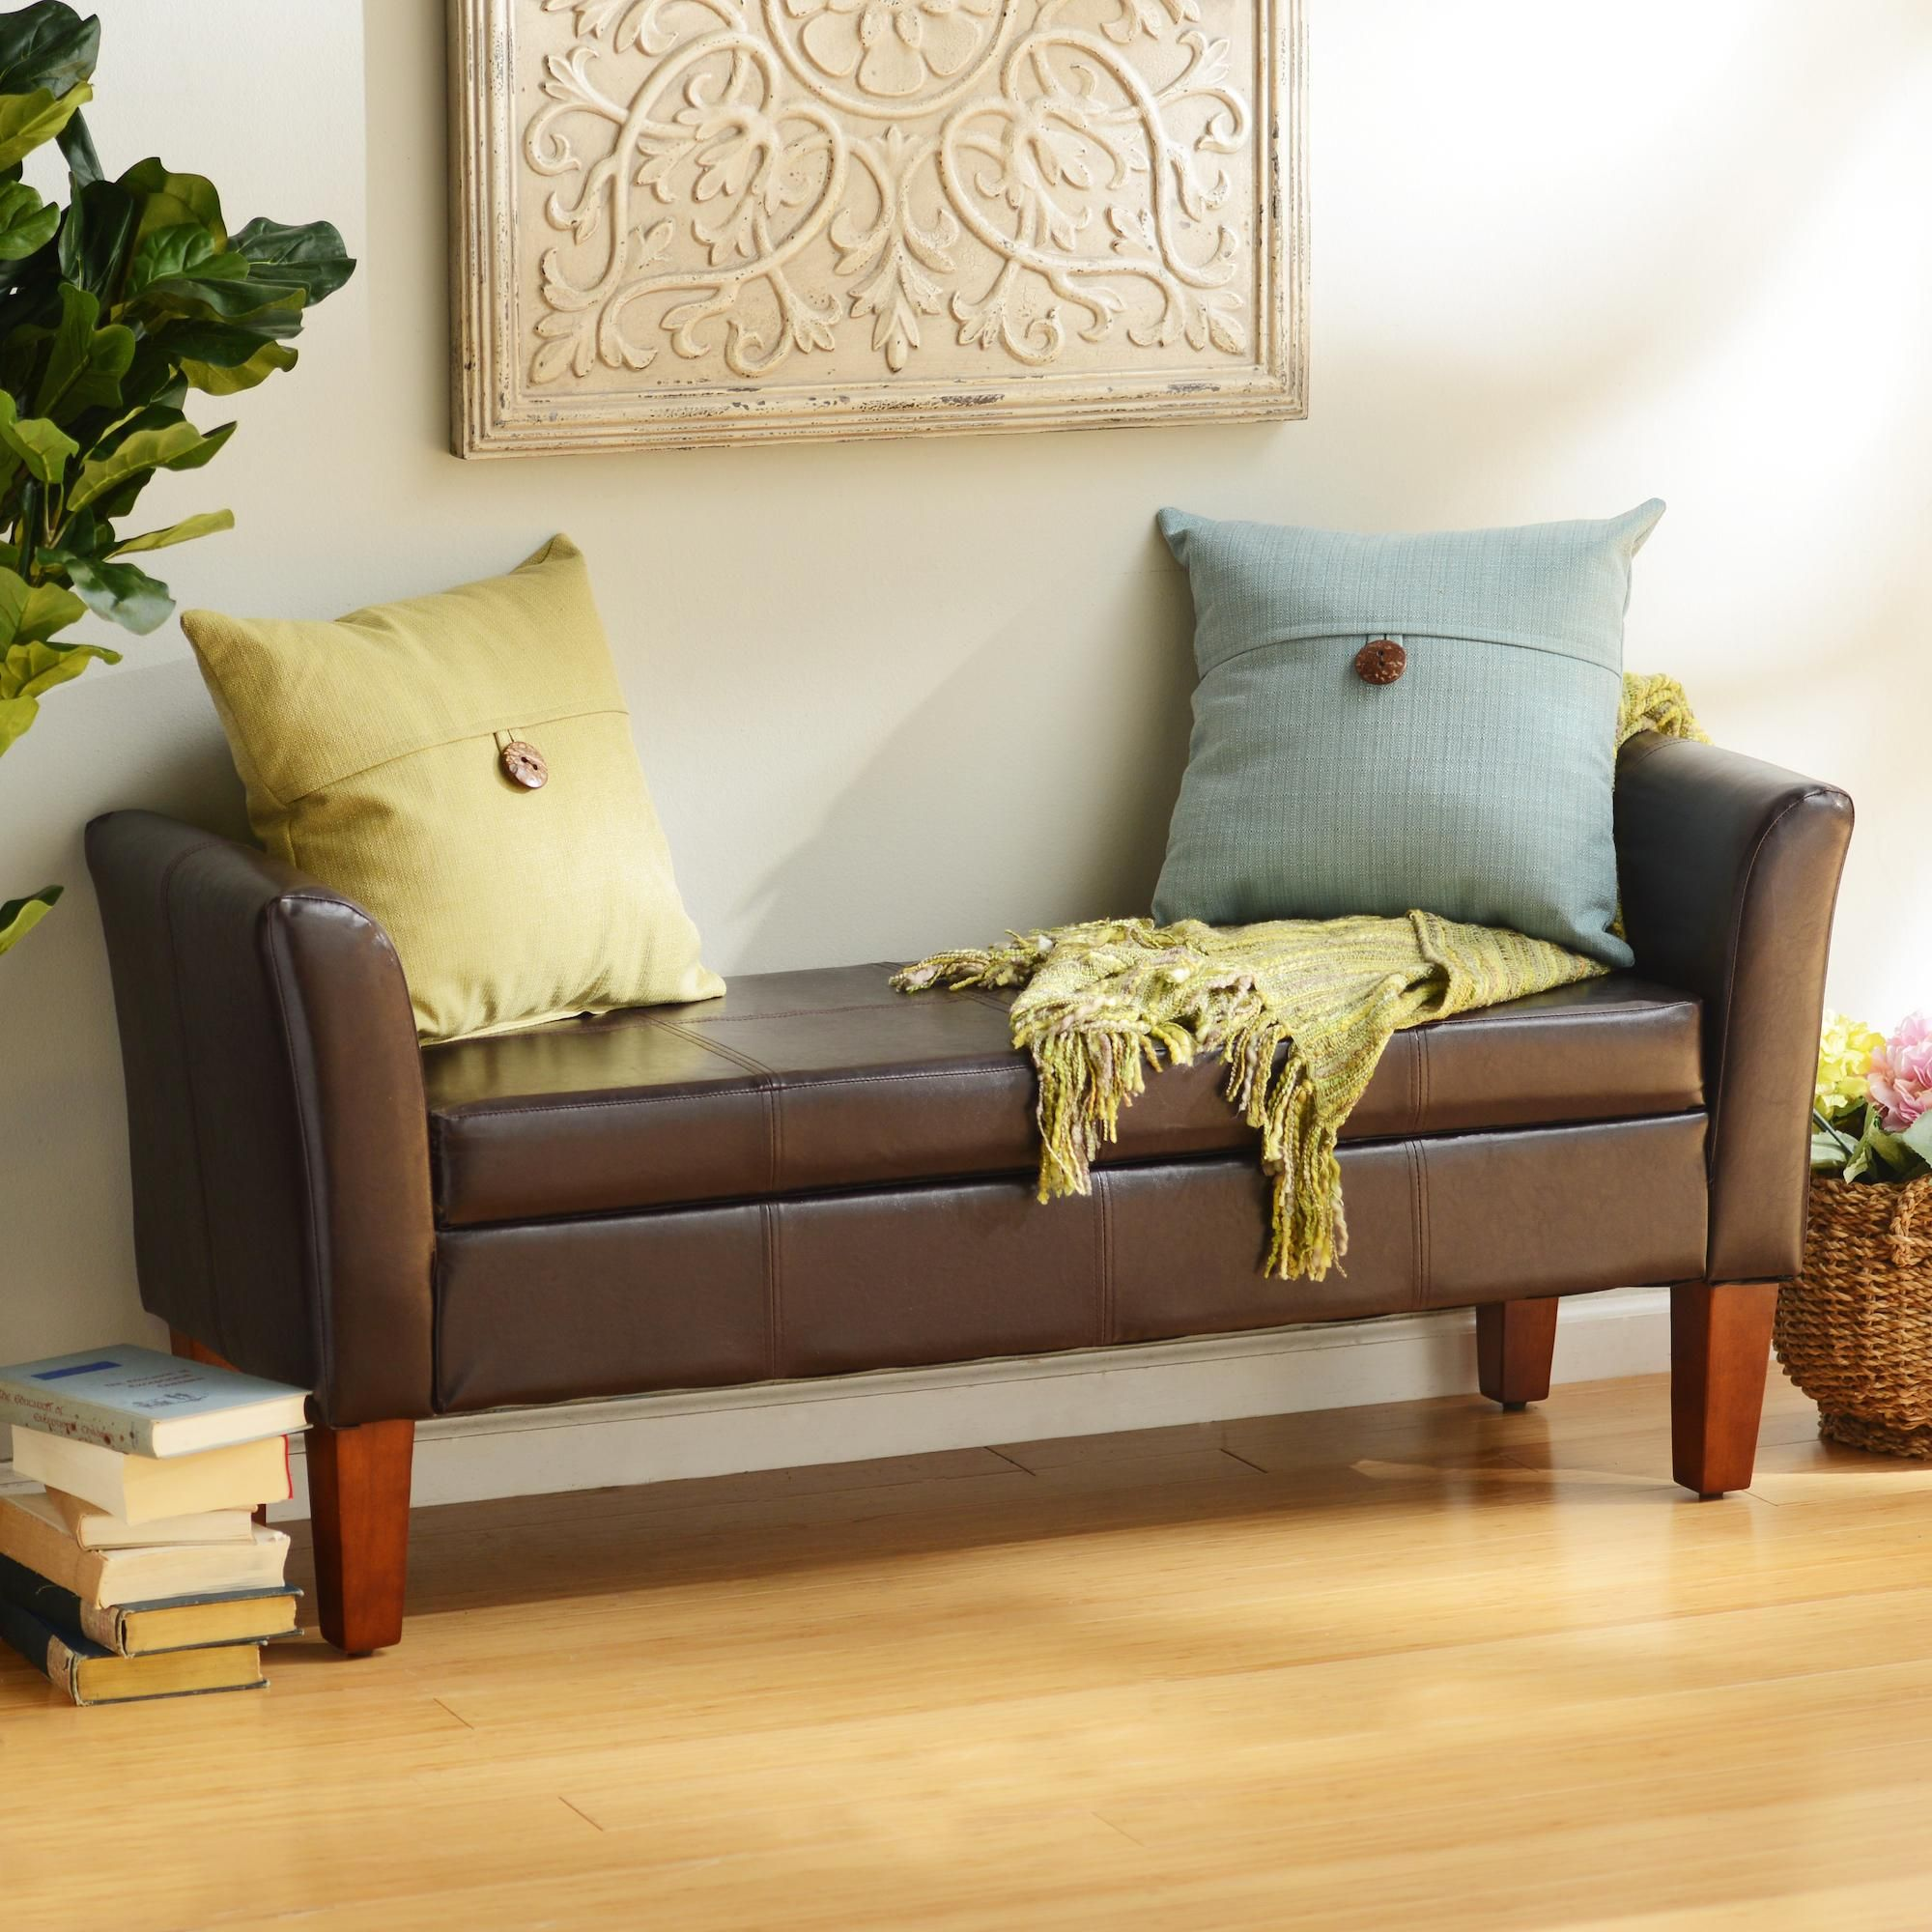 Kirkland's Storage Benches are perfect for your entryway